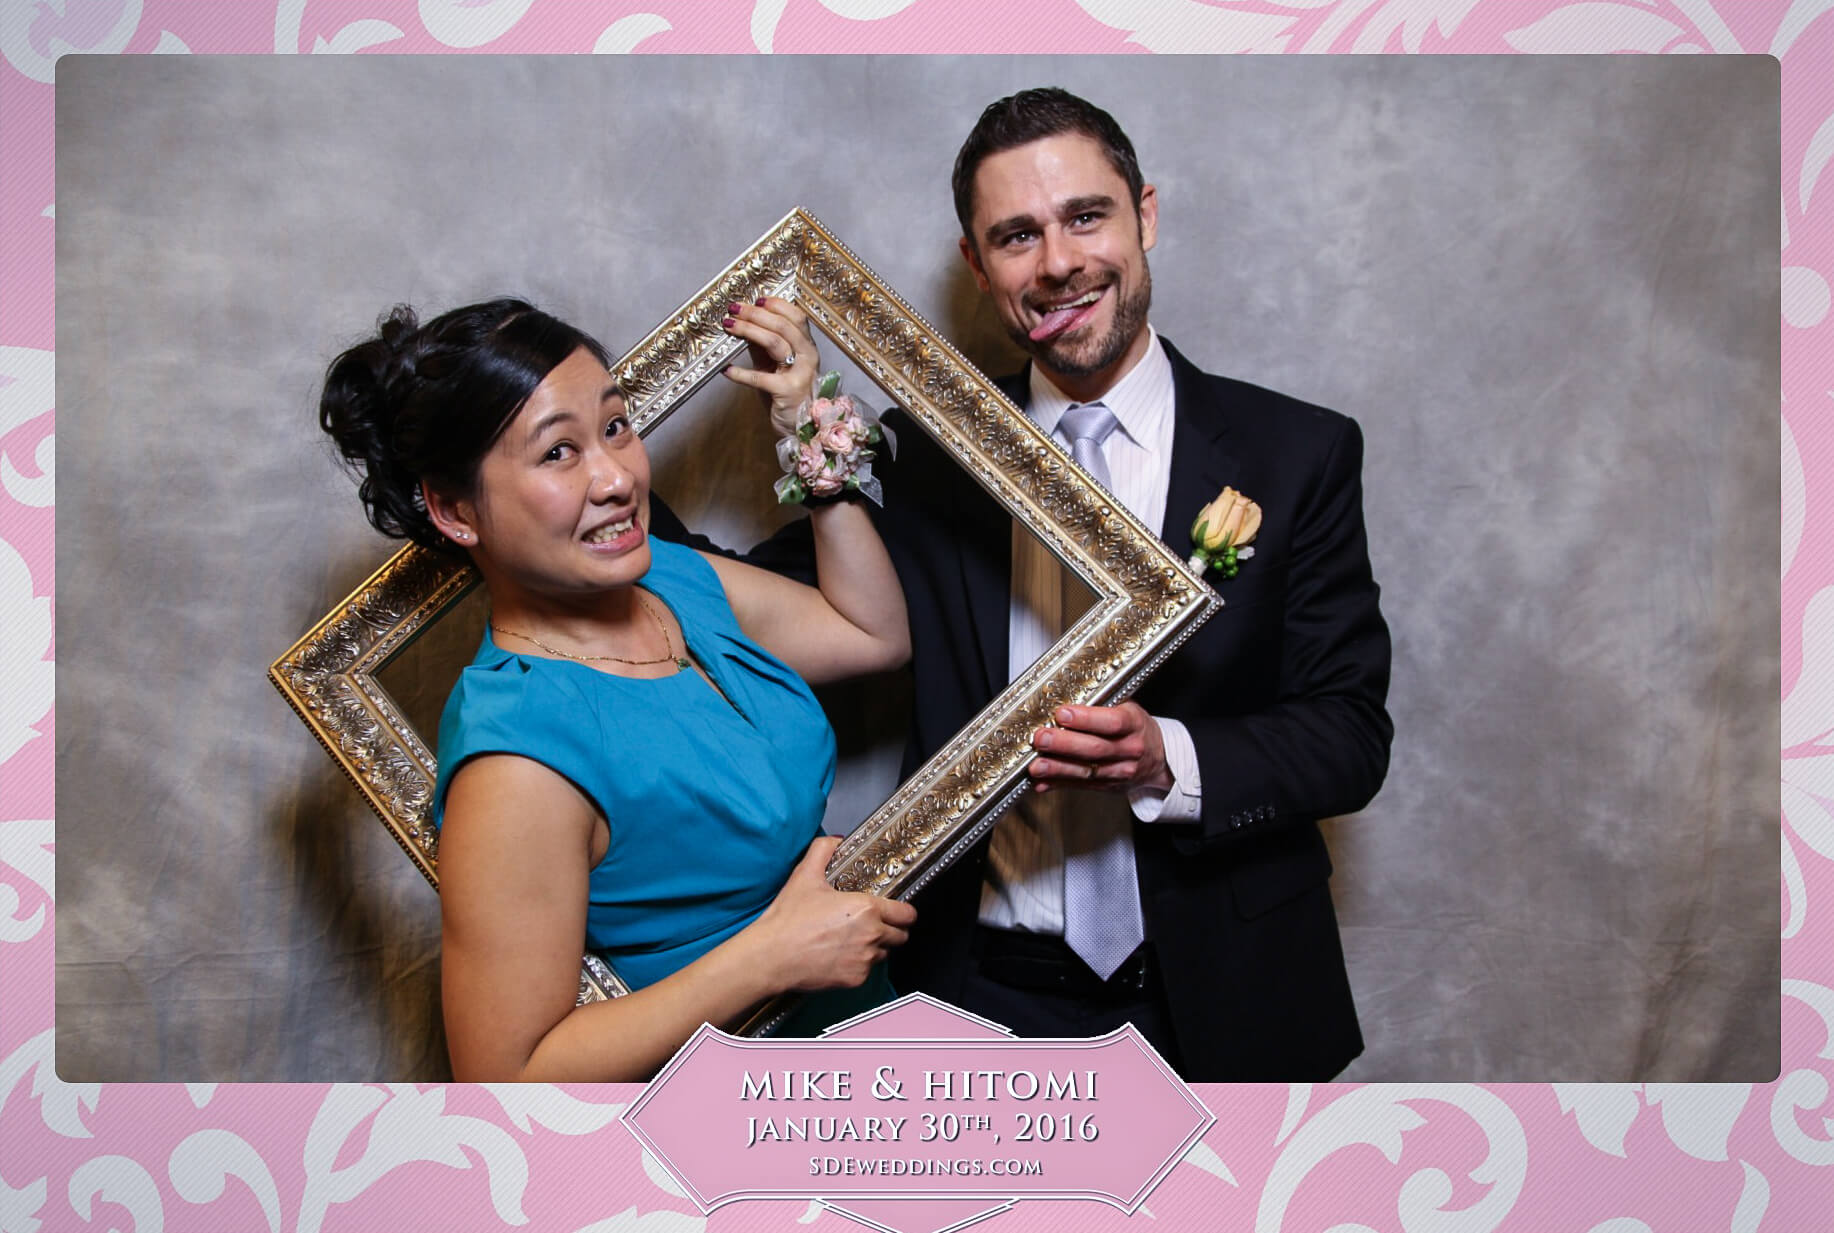 Toronto Spring Villa Wedding Photo Booth Rental 9